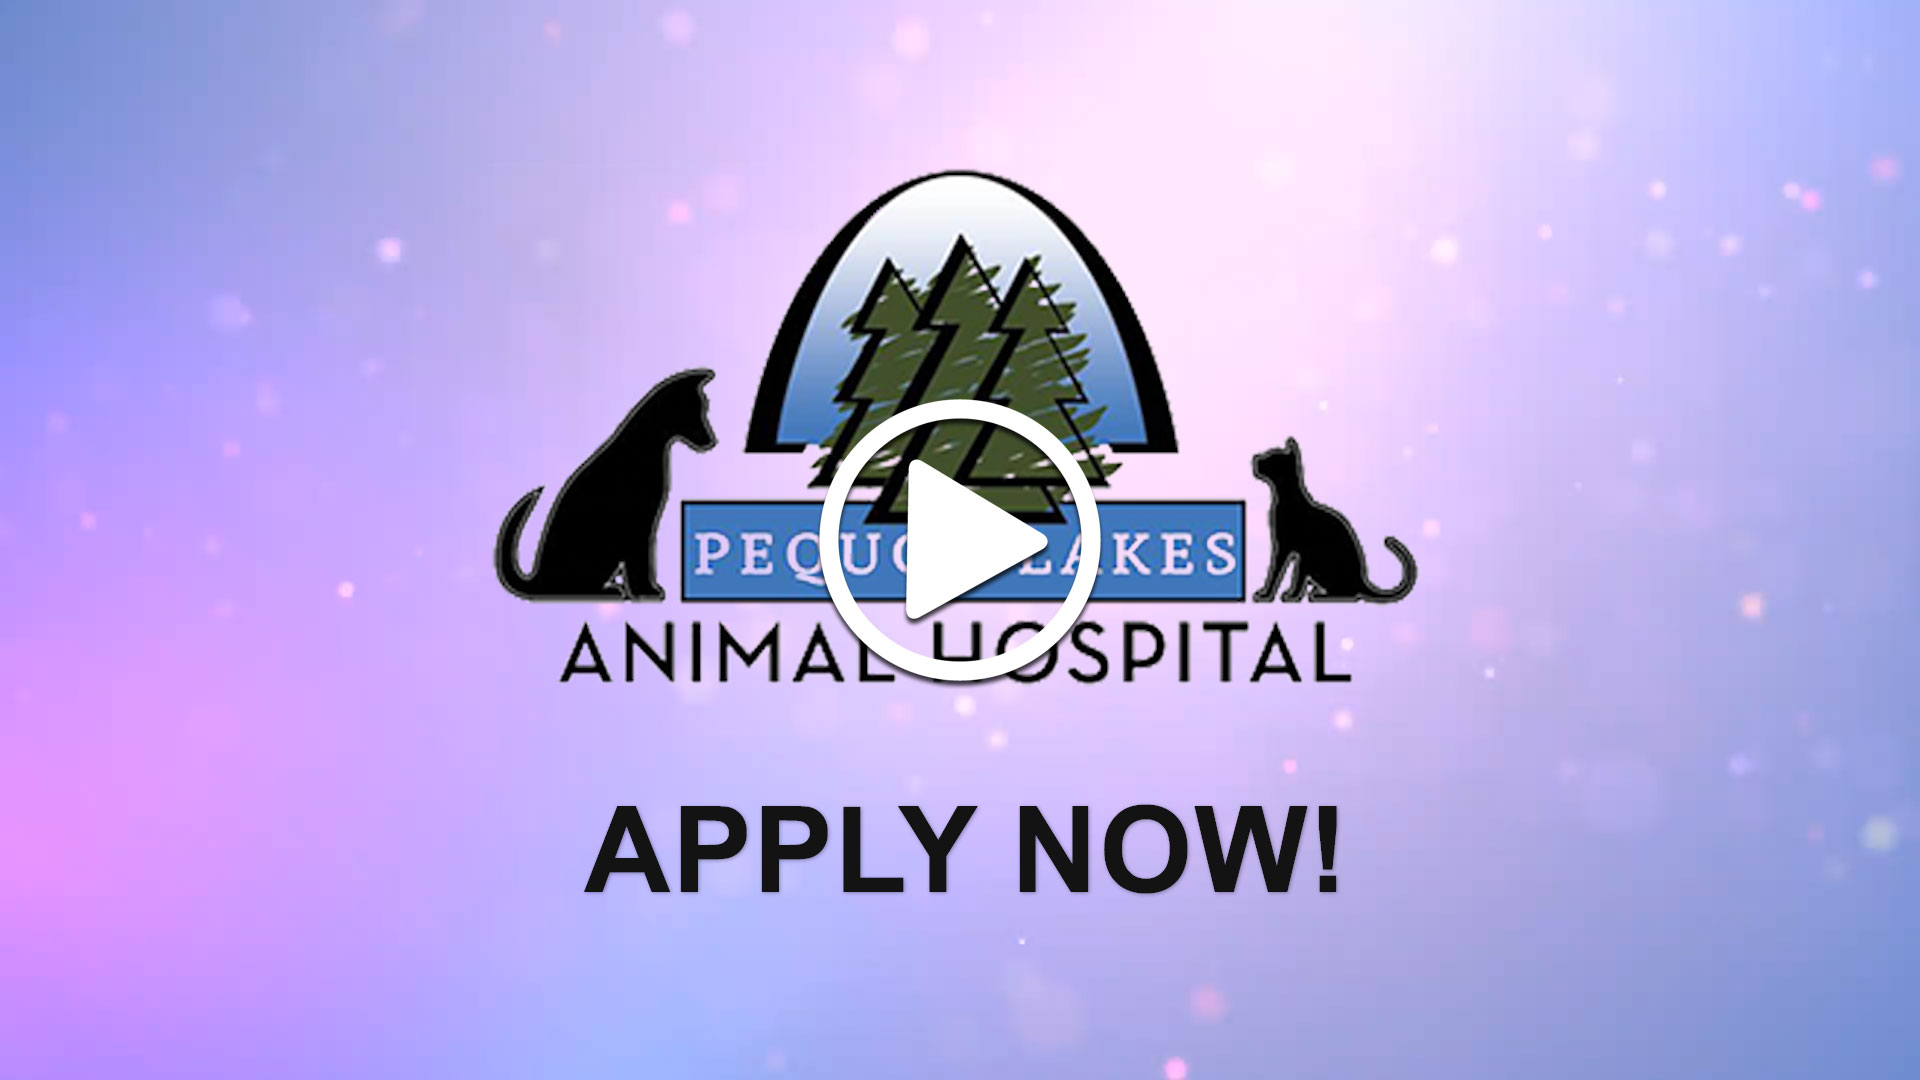 Watch our careers video for available job opening Veterinarians Looking for a Great Opportunity in Pequot Lakes, Minnesota